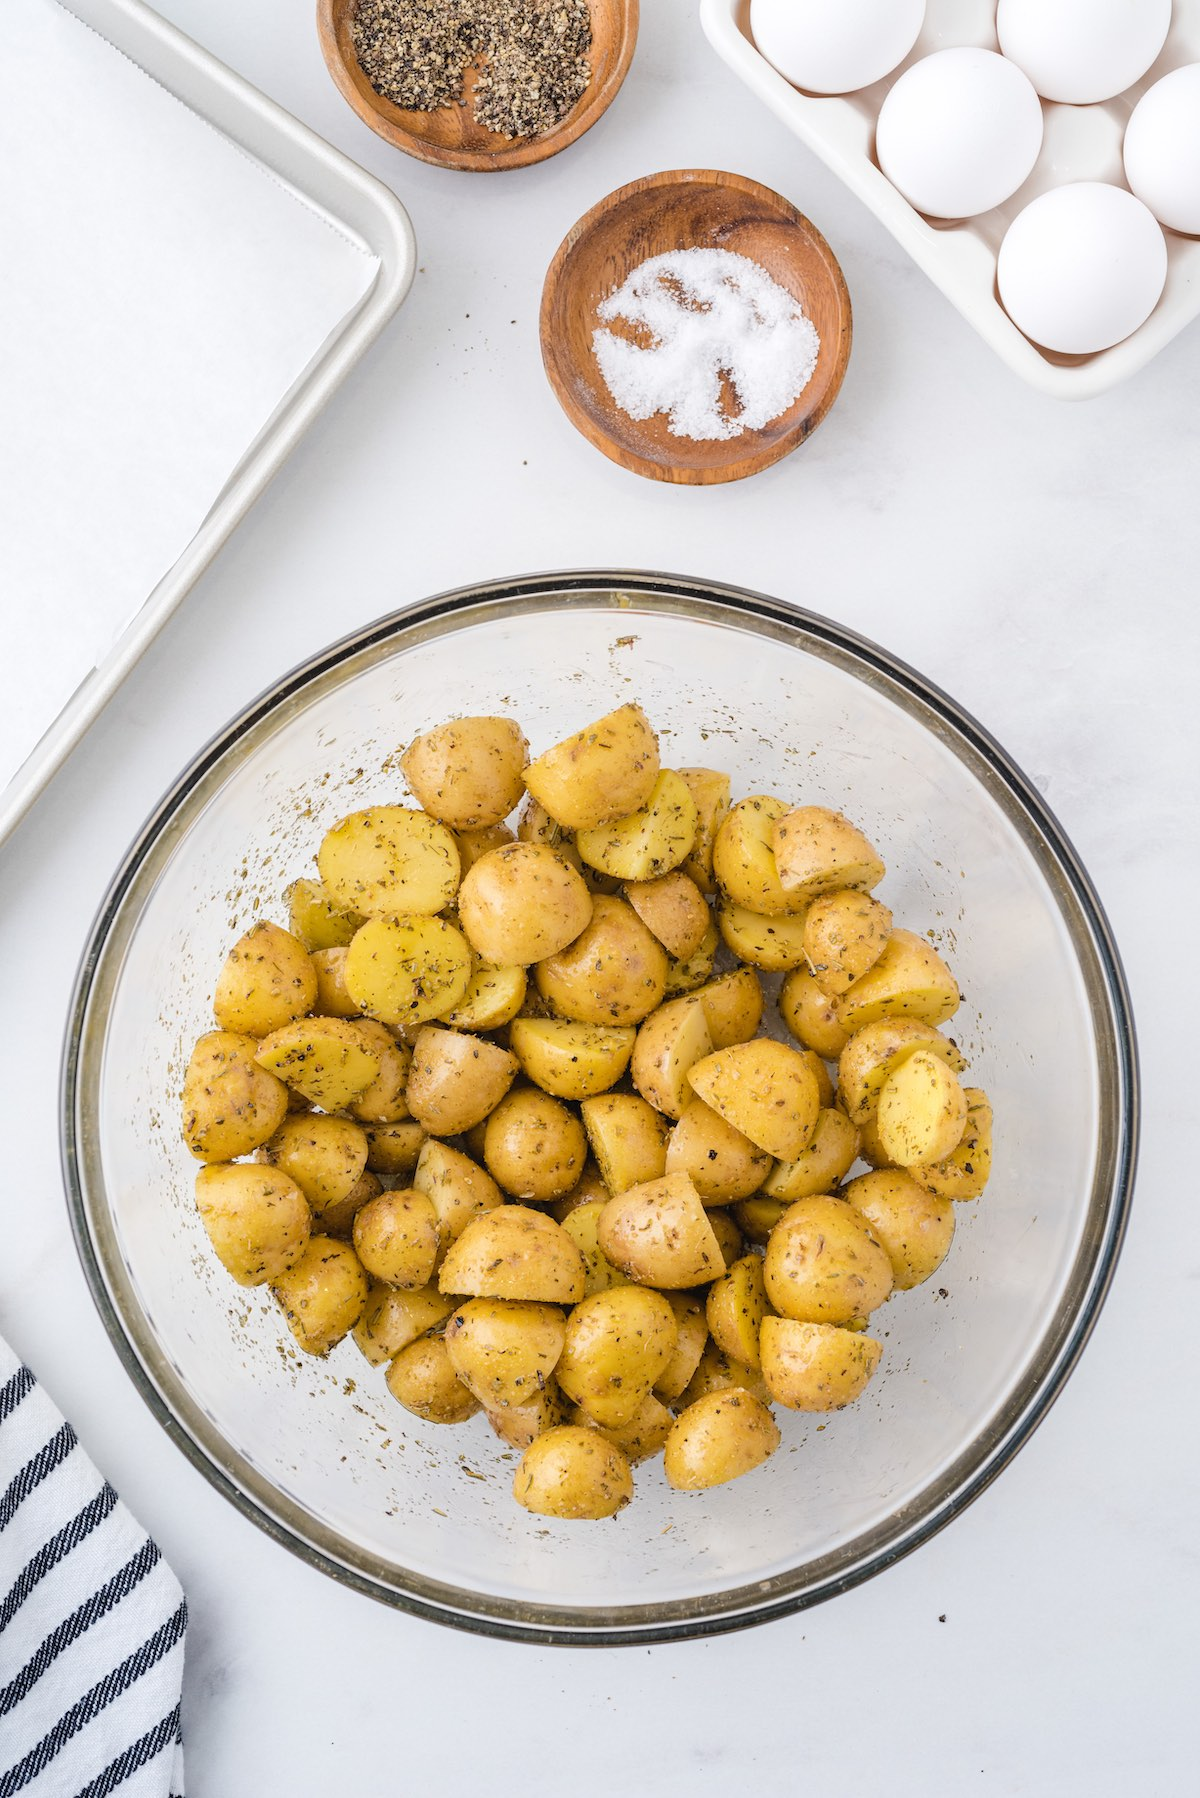 Potatoes with spices in bowl